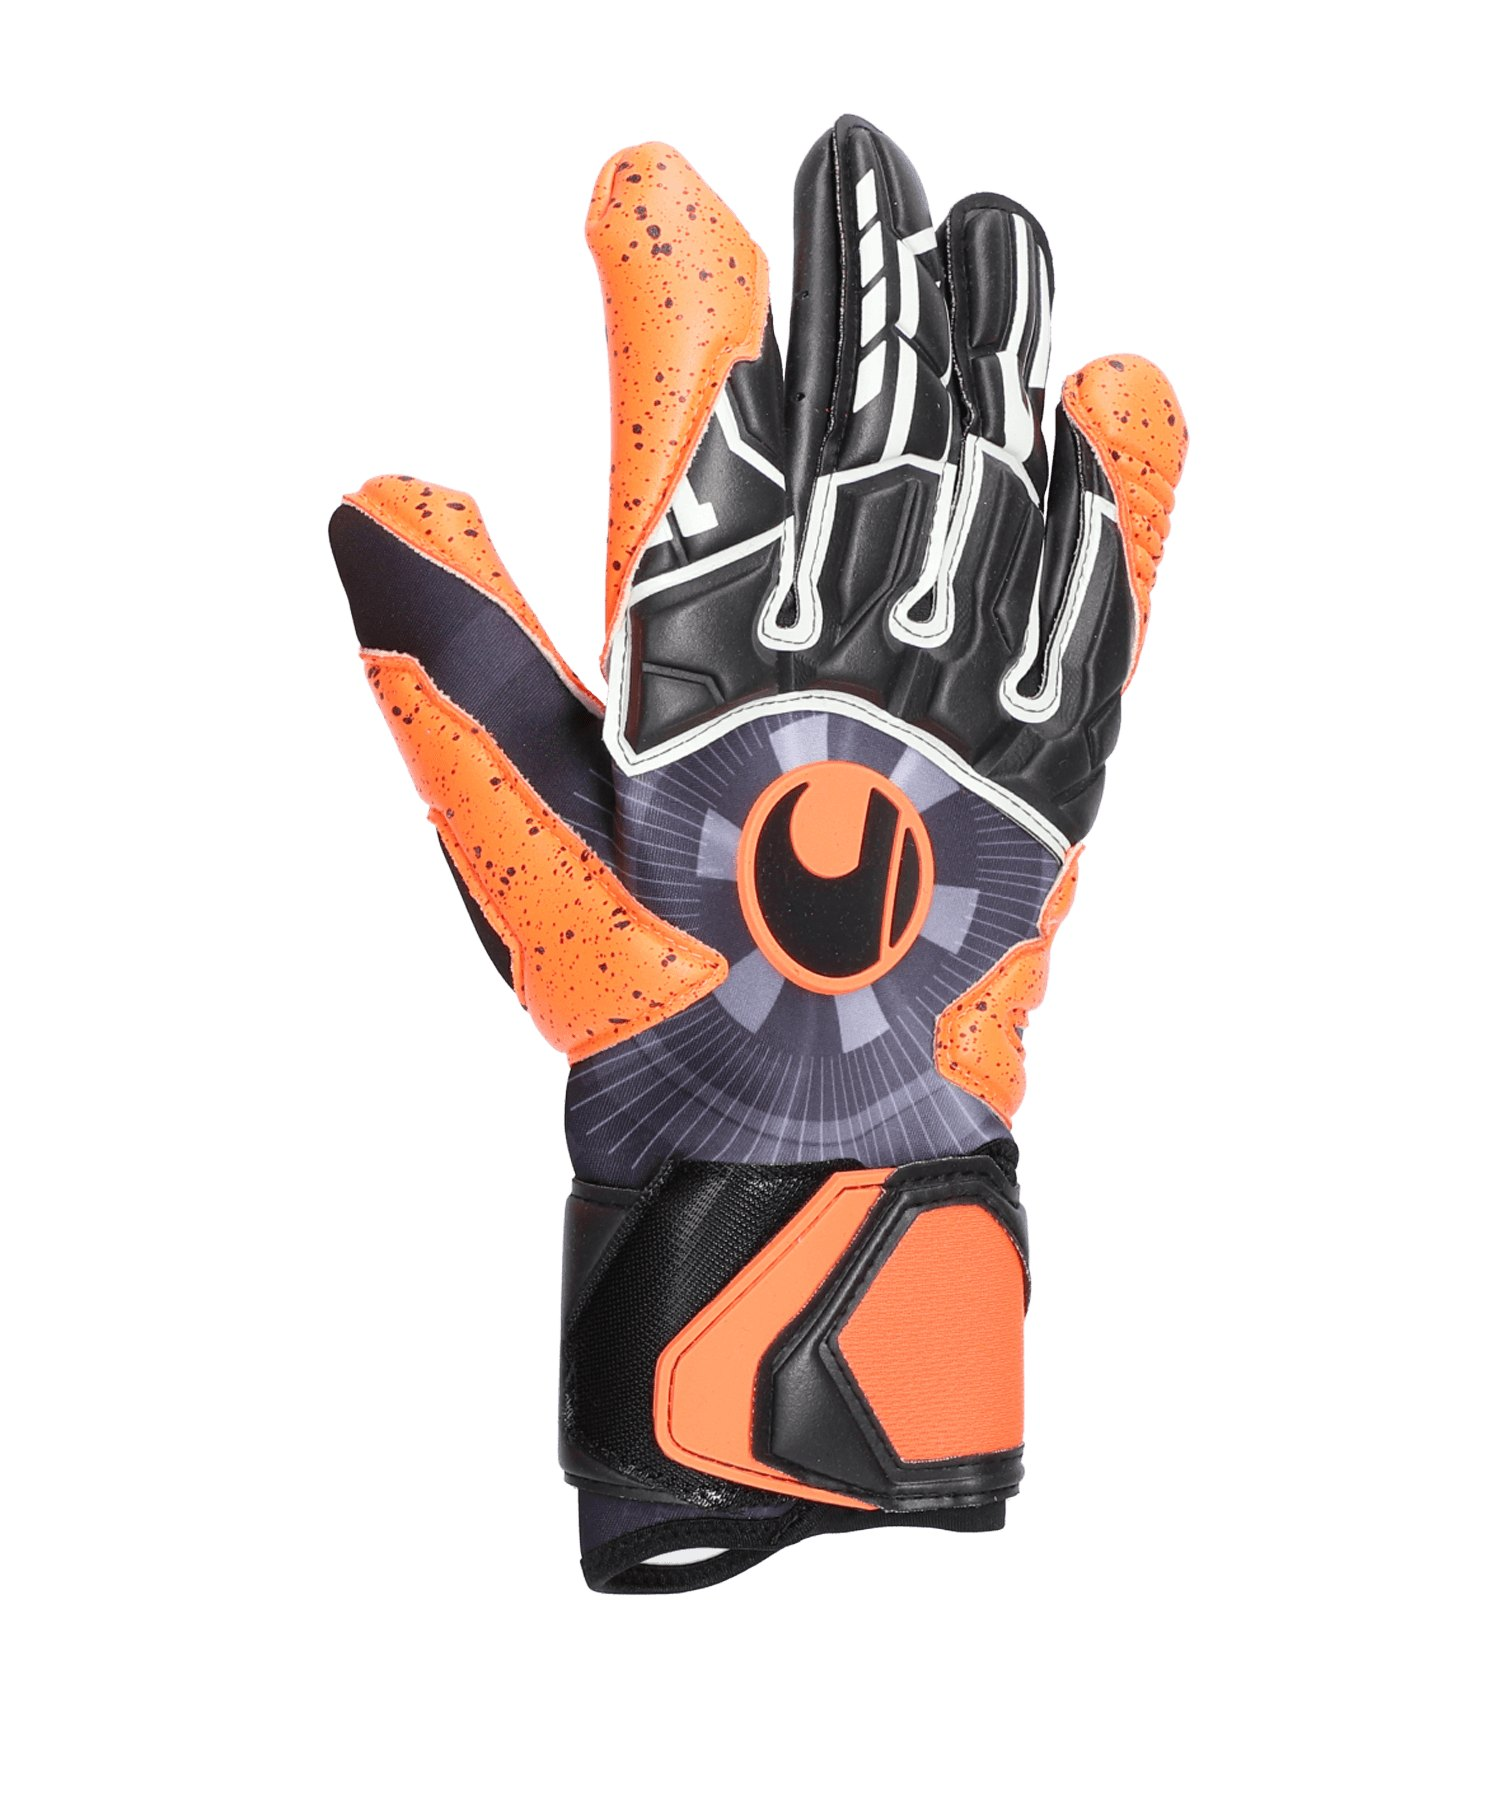 Uhlsport Dyn.Impulse Supergrip TW-Handschuh F279 - rot